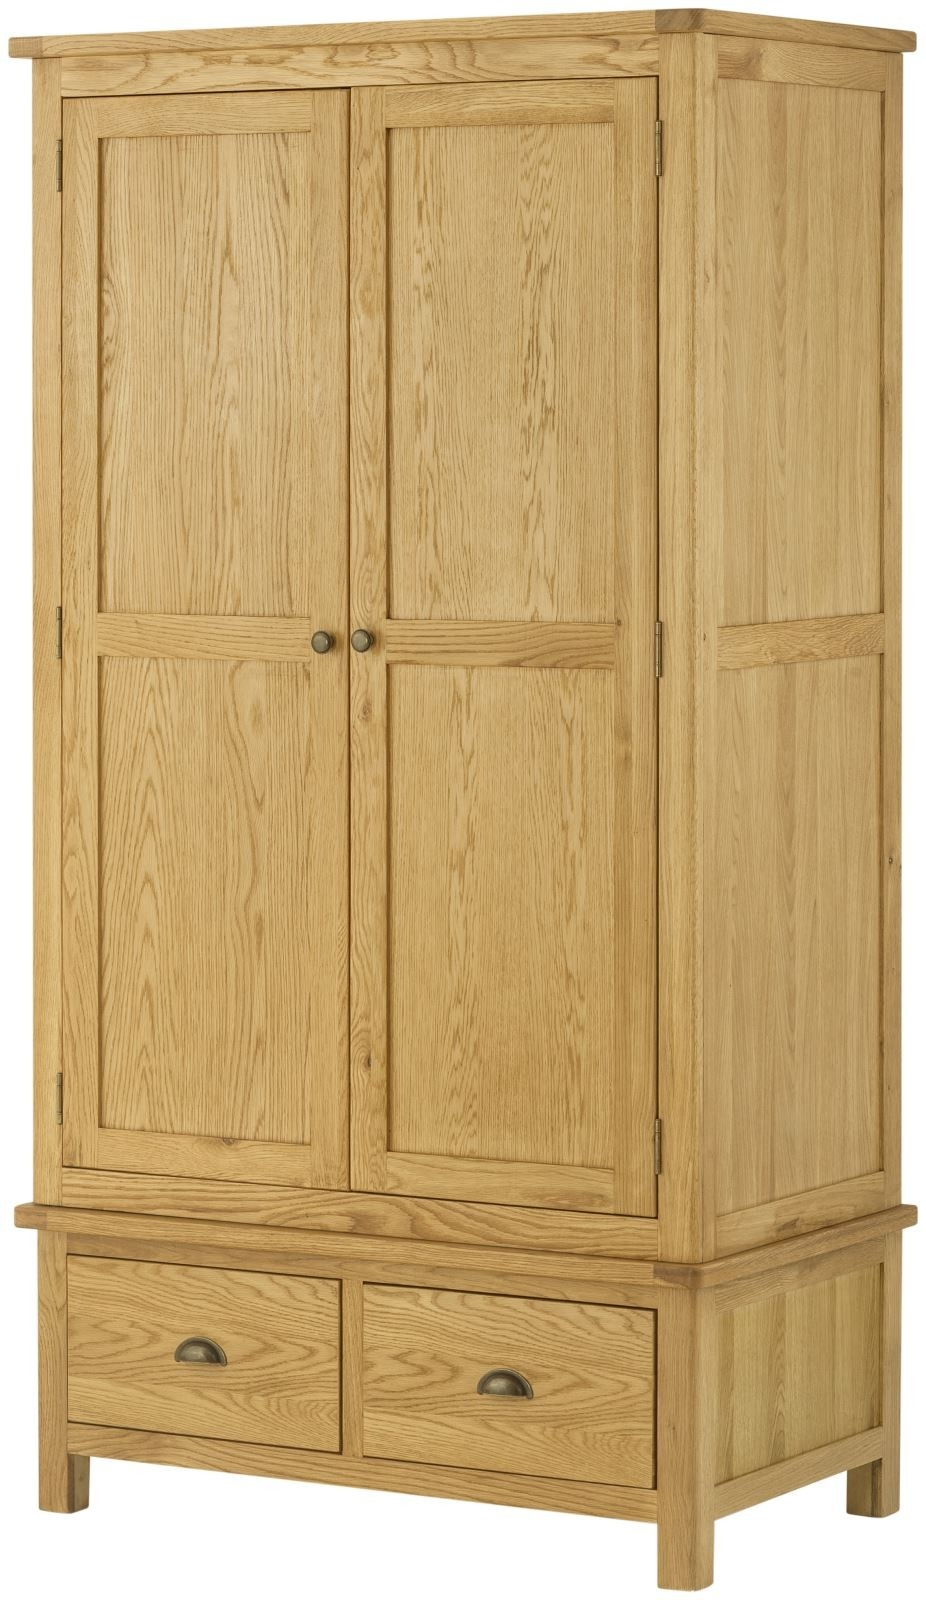 Portland Oak Wardrobe - 2 Door 2 Drawer Gents